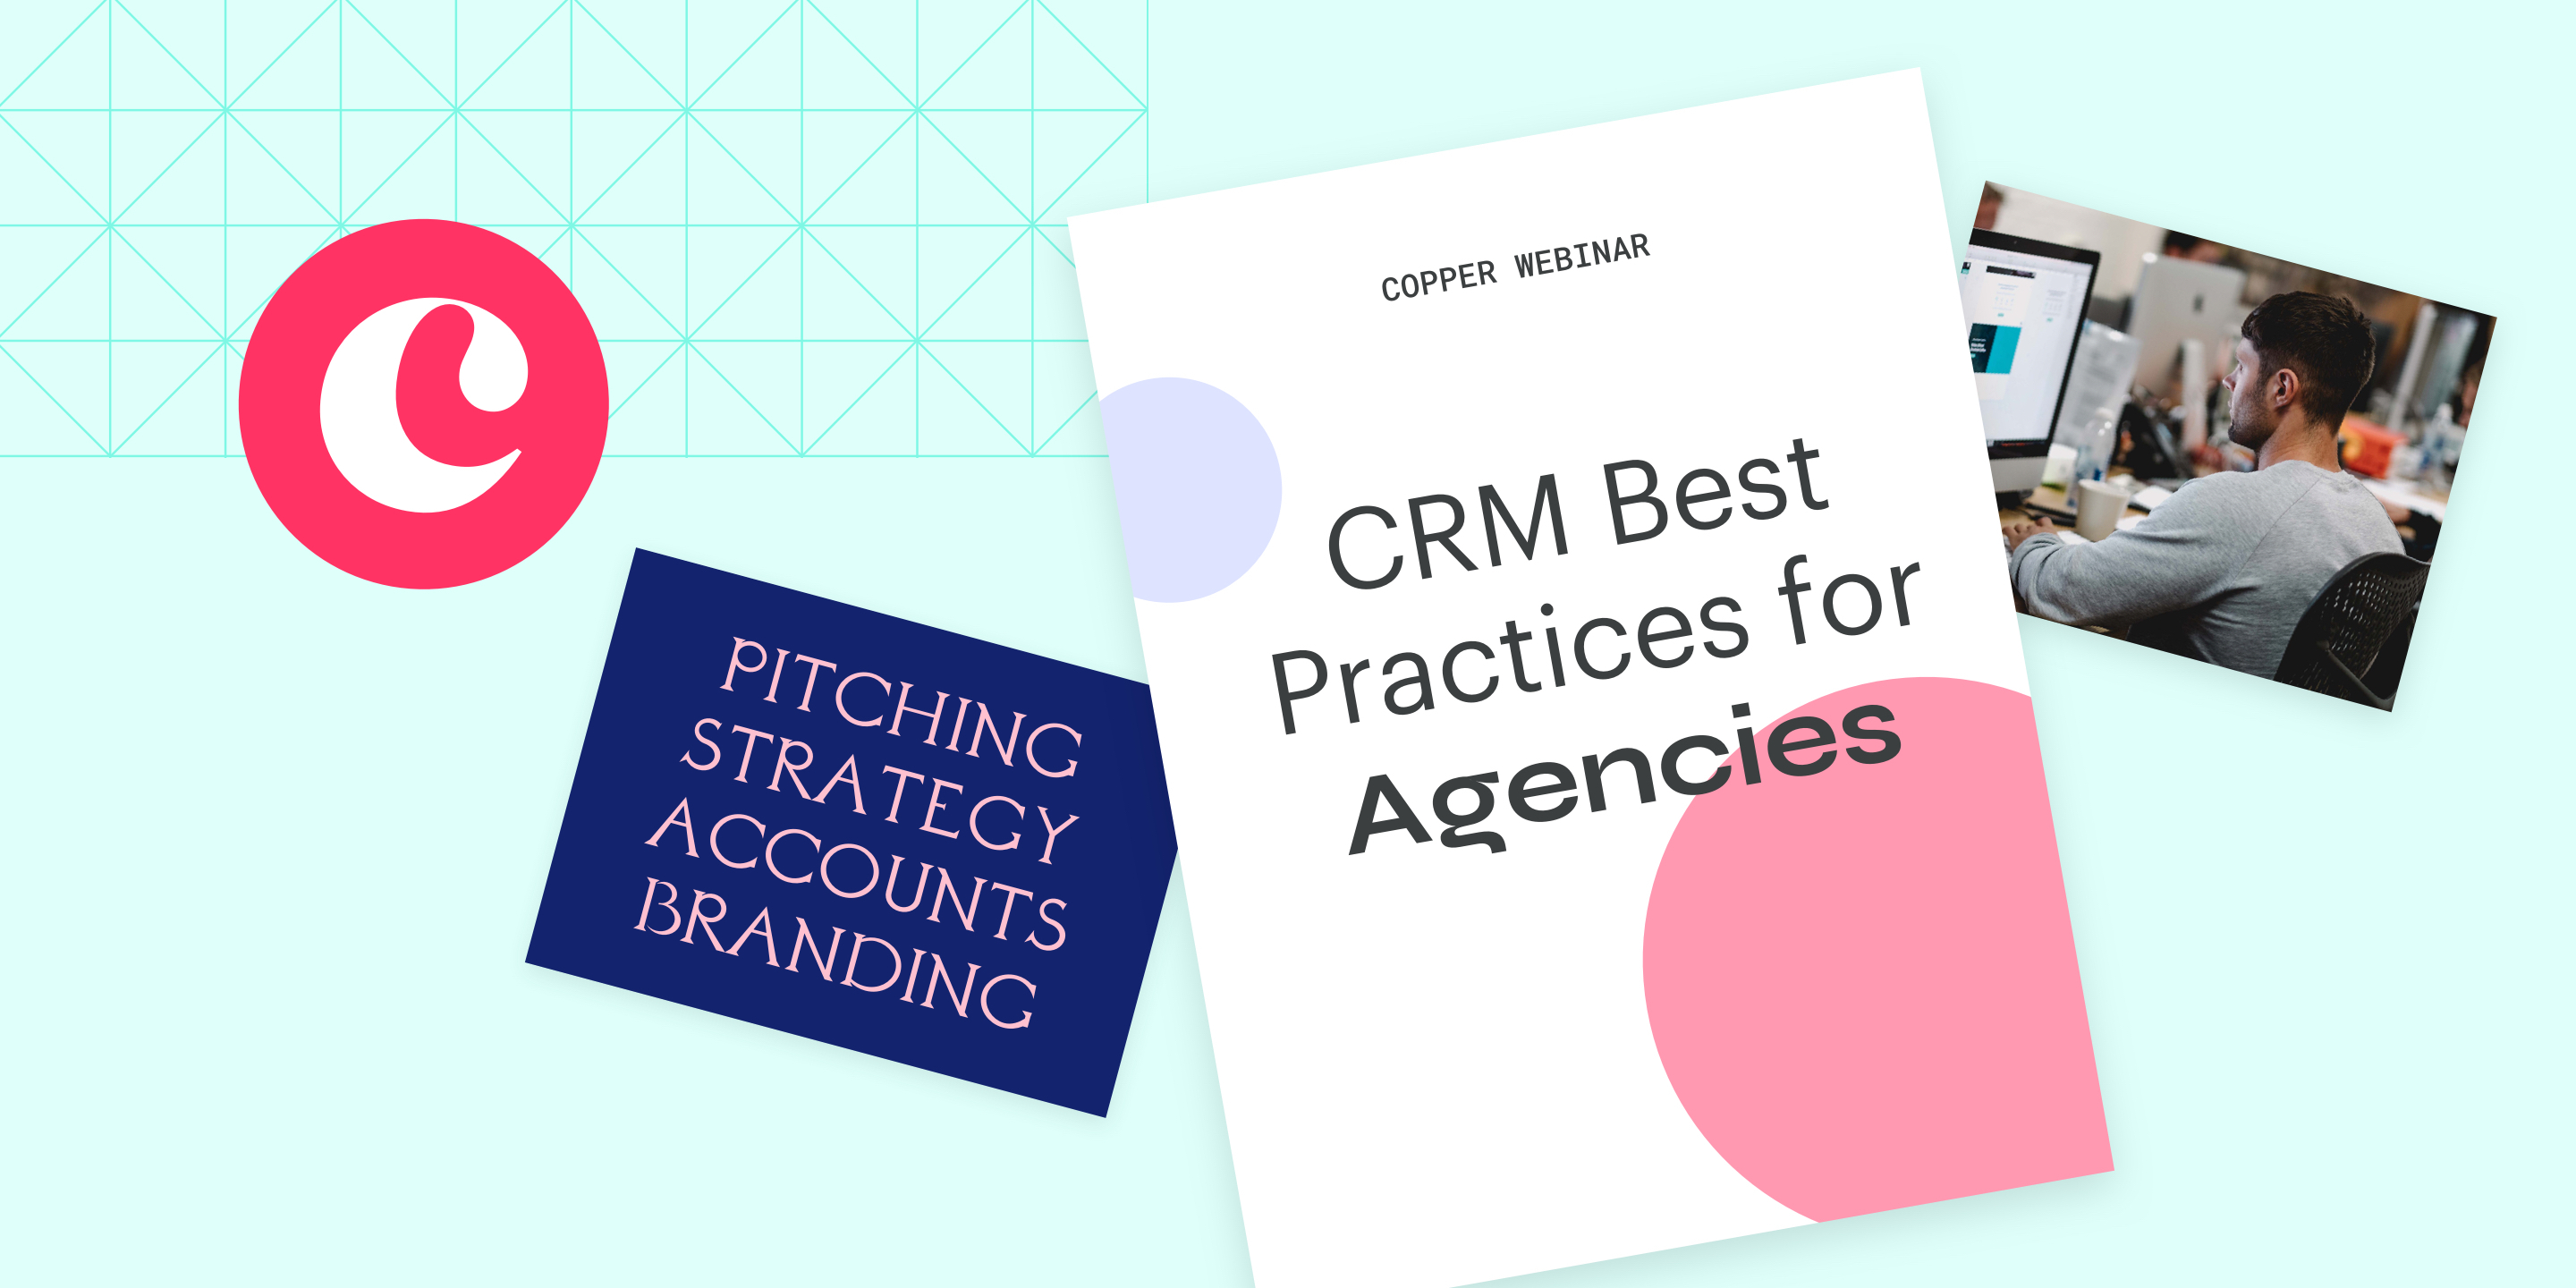 CRM Best Practices for Agencies